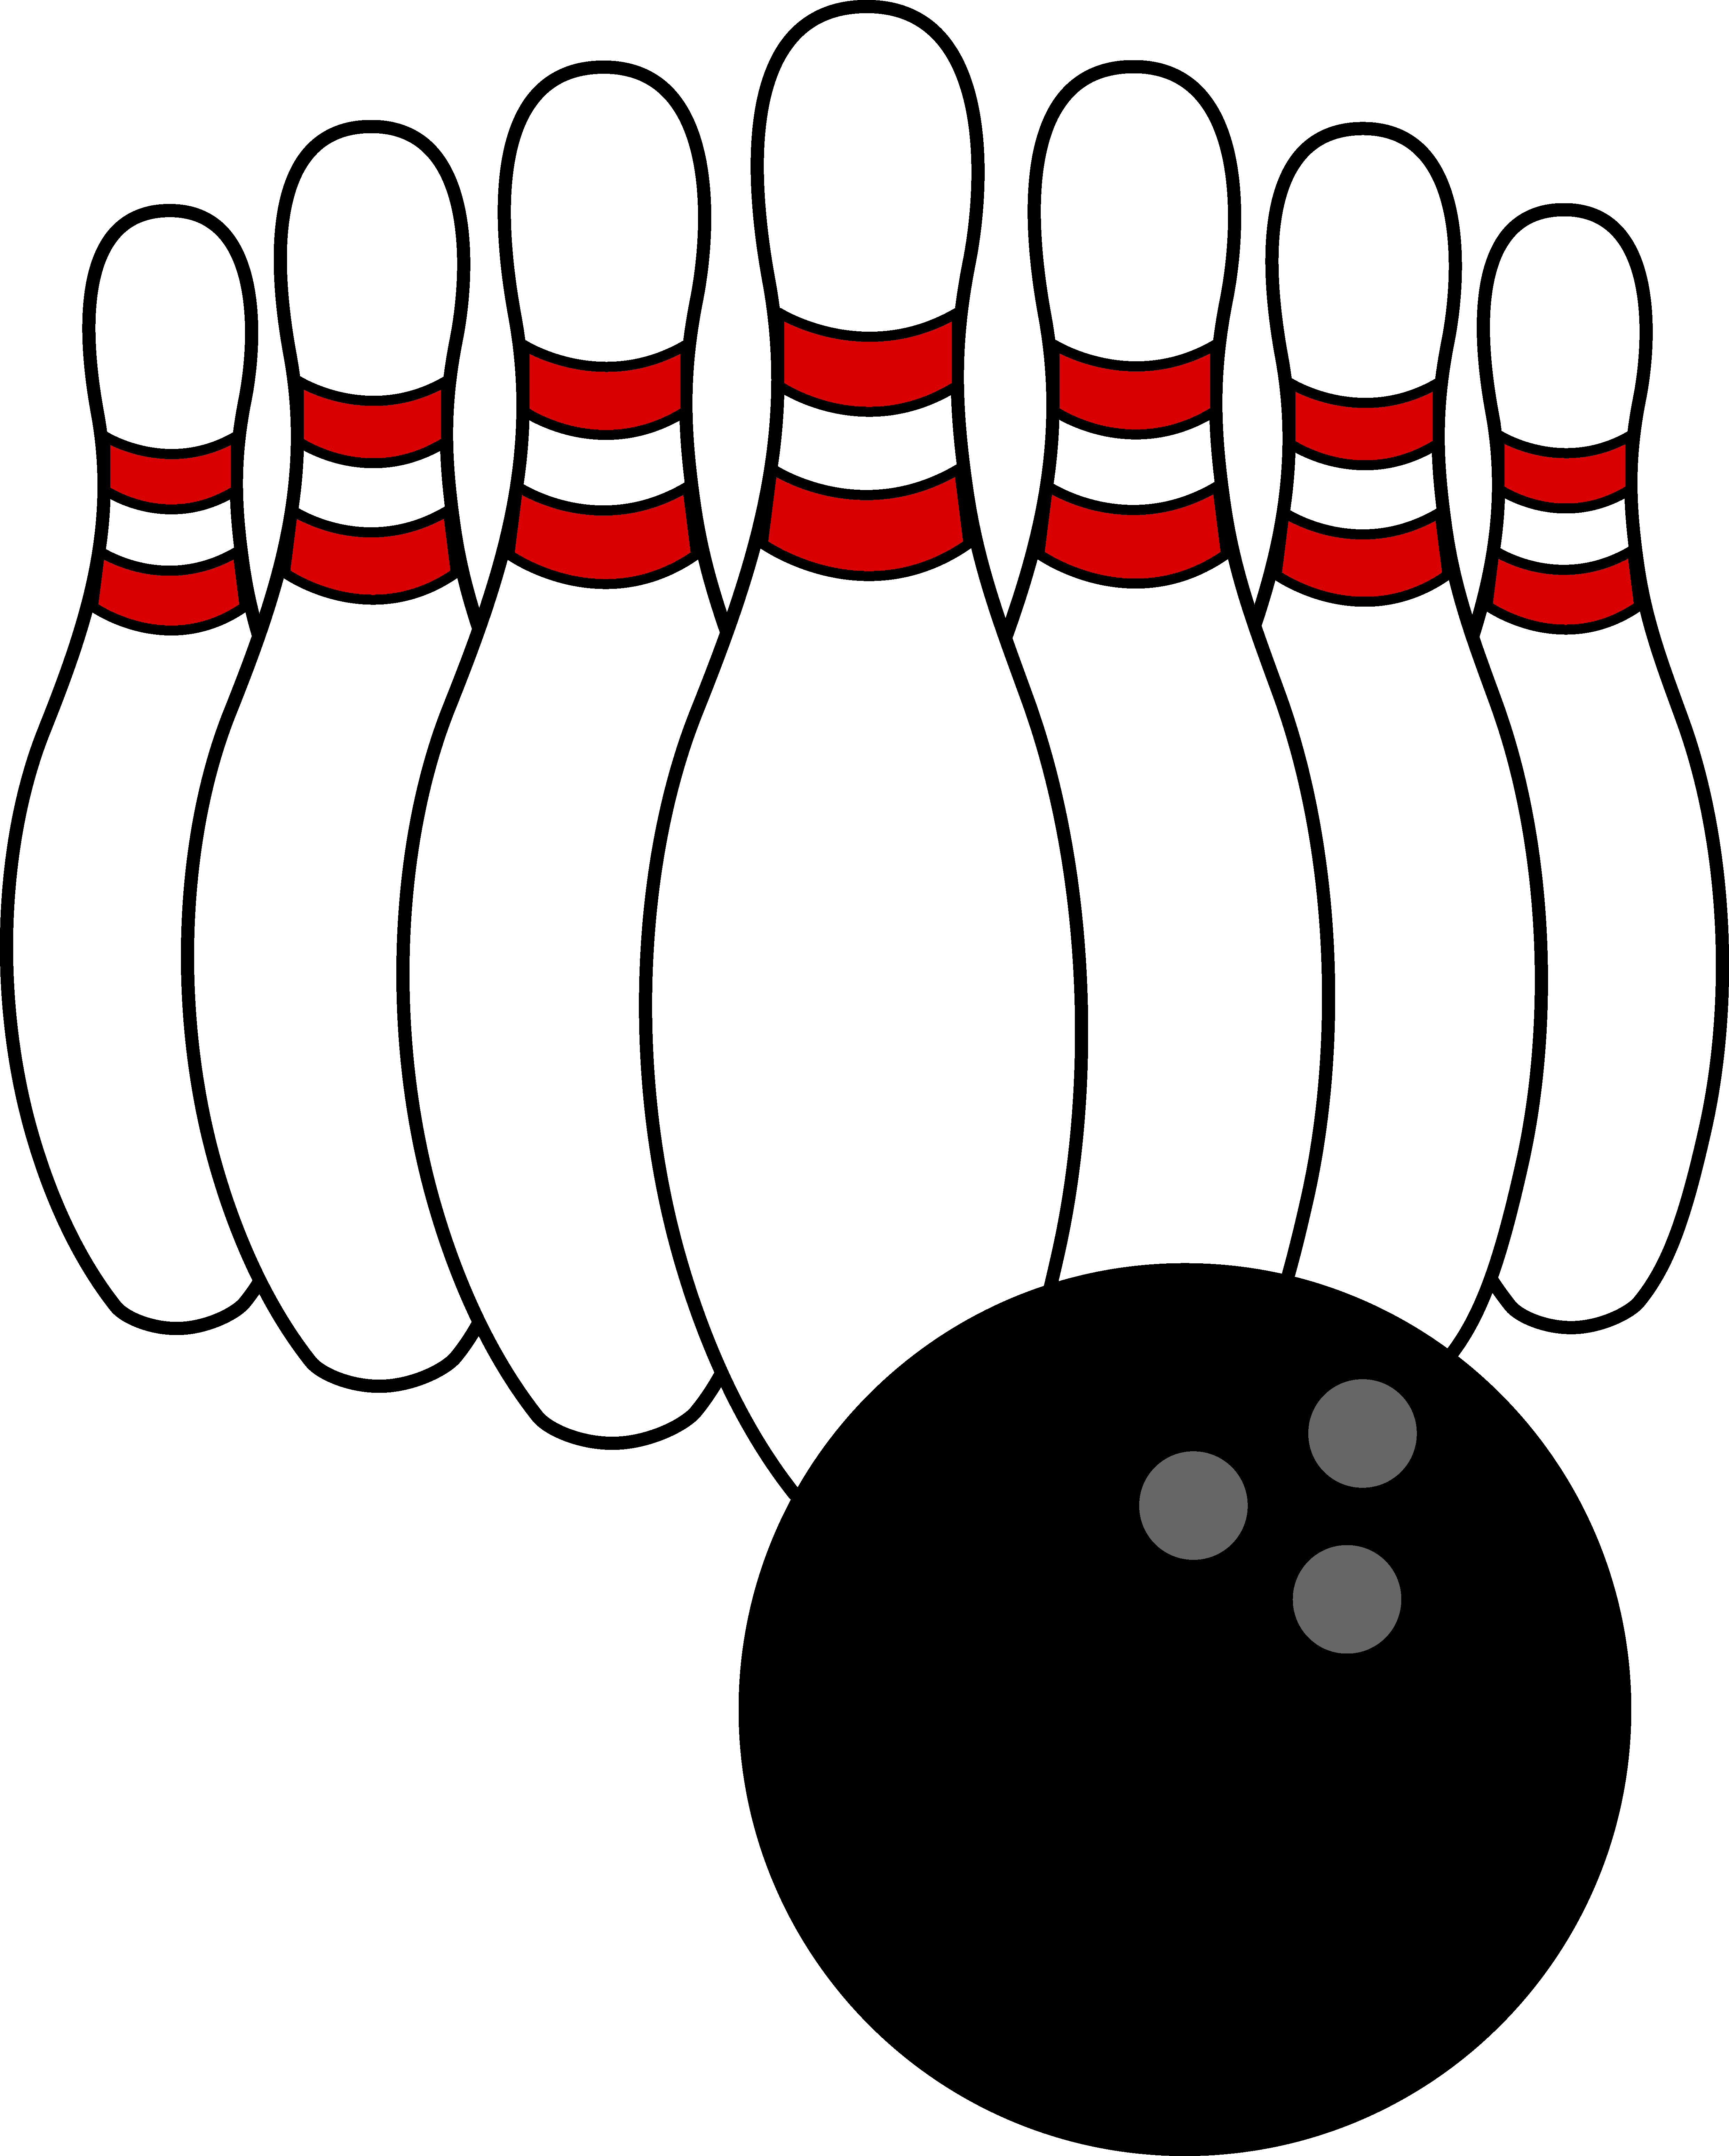 Bowling Ball and Pins - Free Clip Art